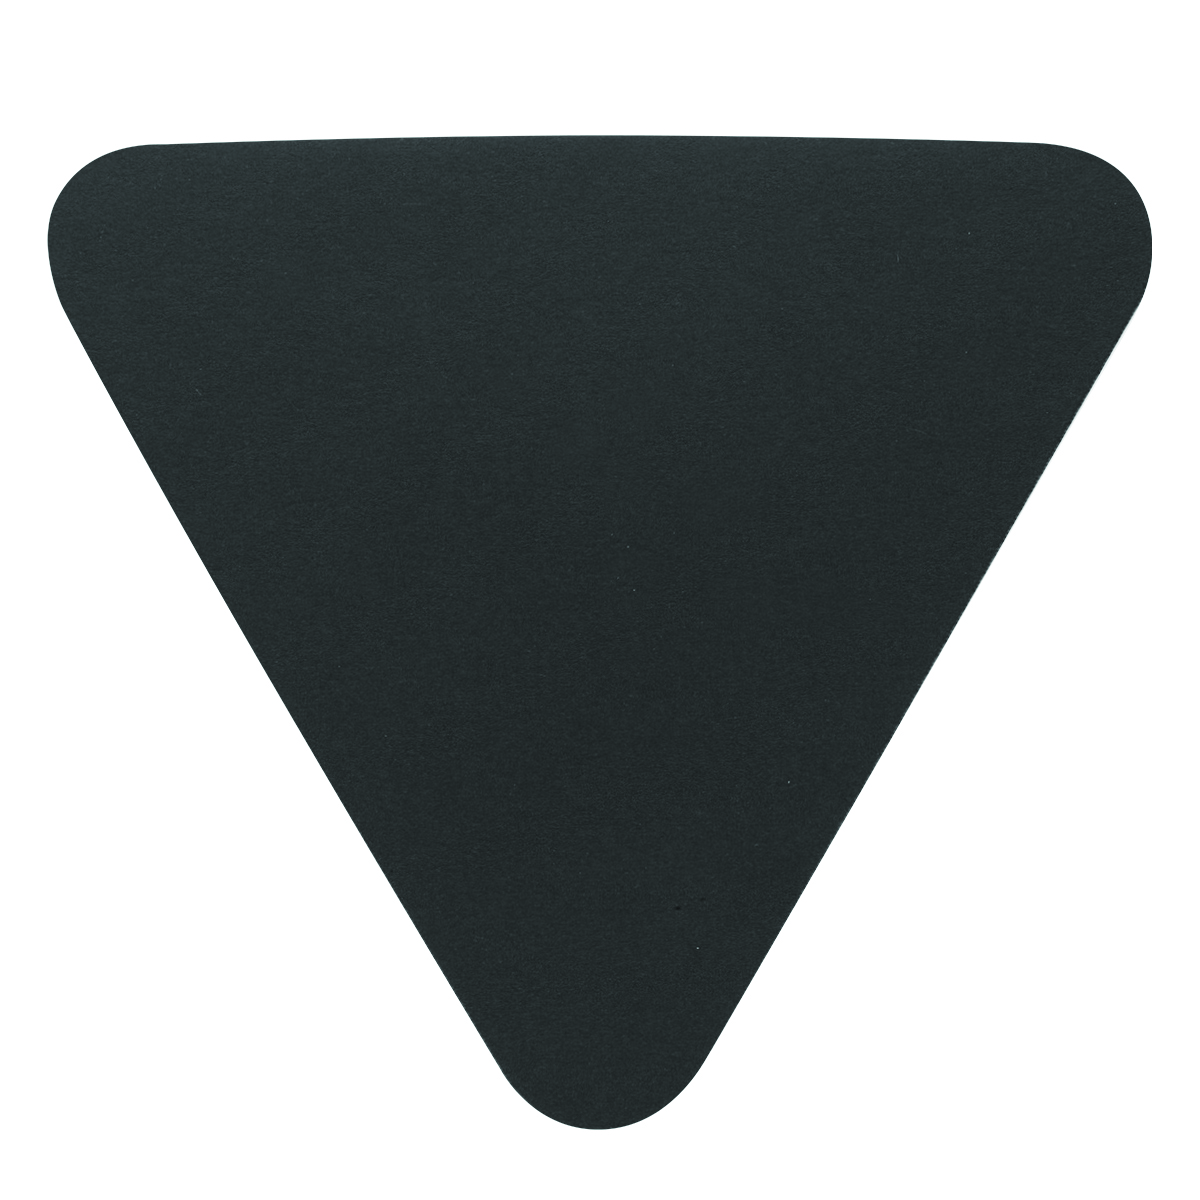 Black Triangle Shaped Sticky Notes Pad